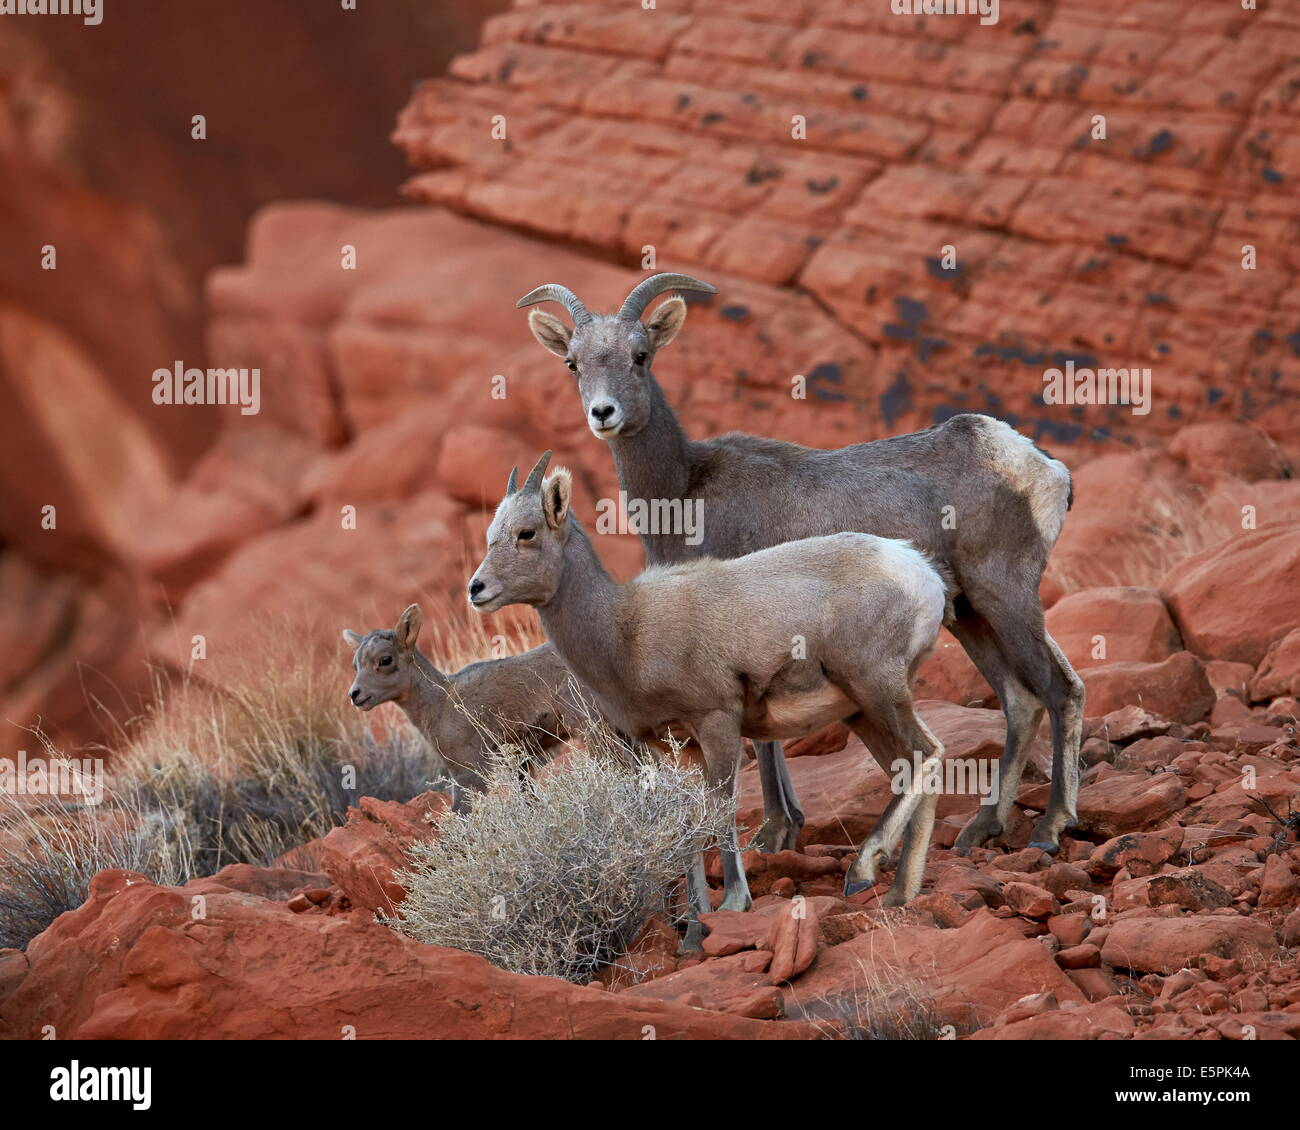 Desert Bighorn Sheep (Ovis canadensis nelsoni) ewe and two lambs, Valley of Fire State Park, Nevada, United States Stock Photo